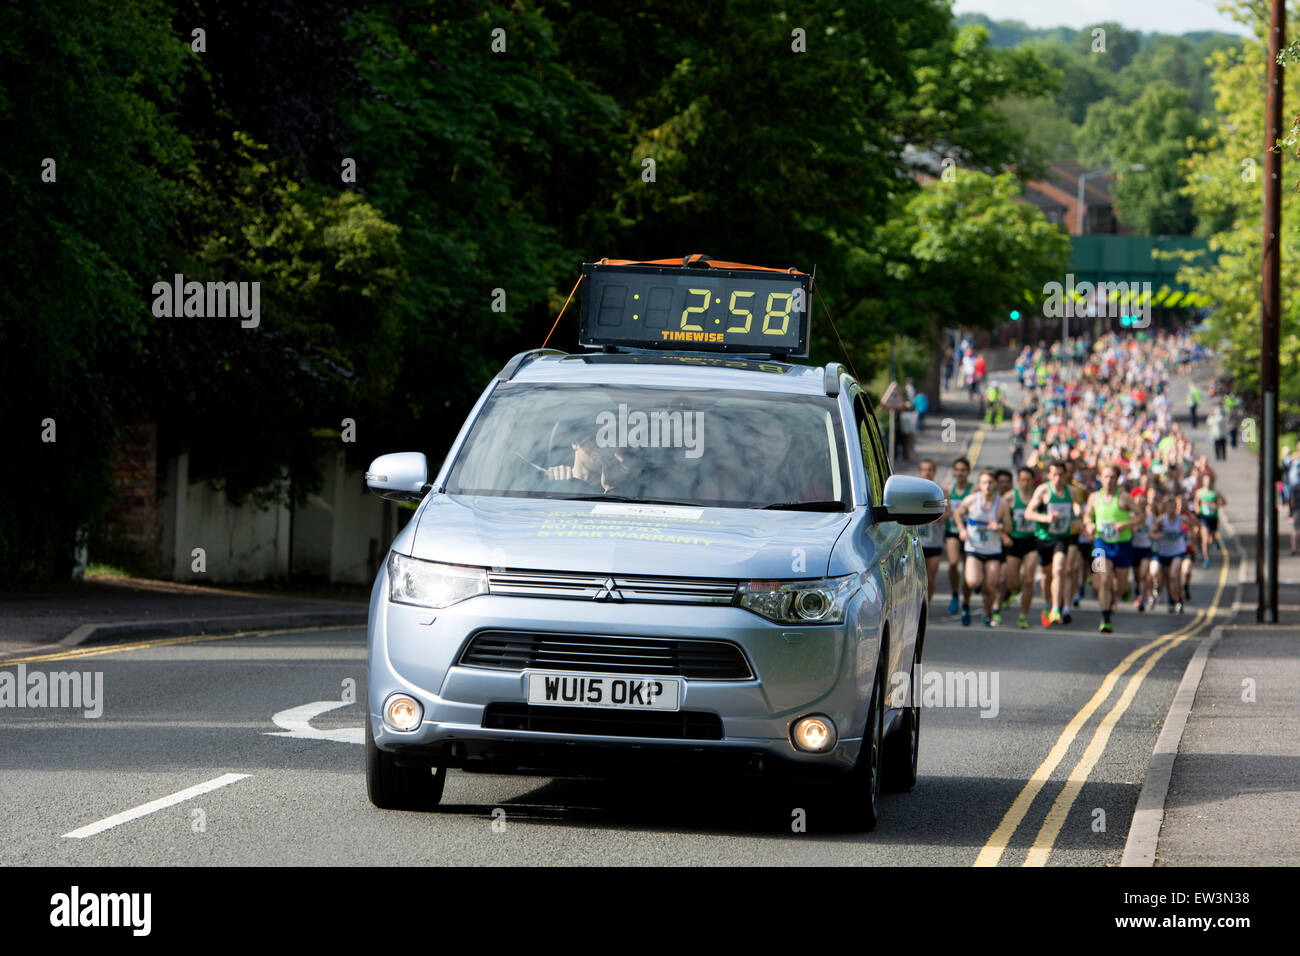 Car with timing clock leading a 10K road race. - Stock Image